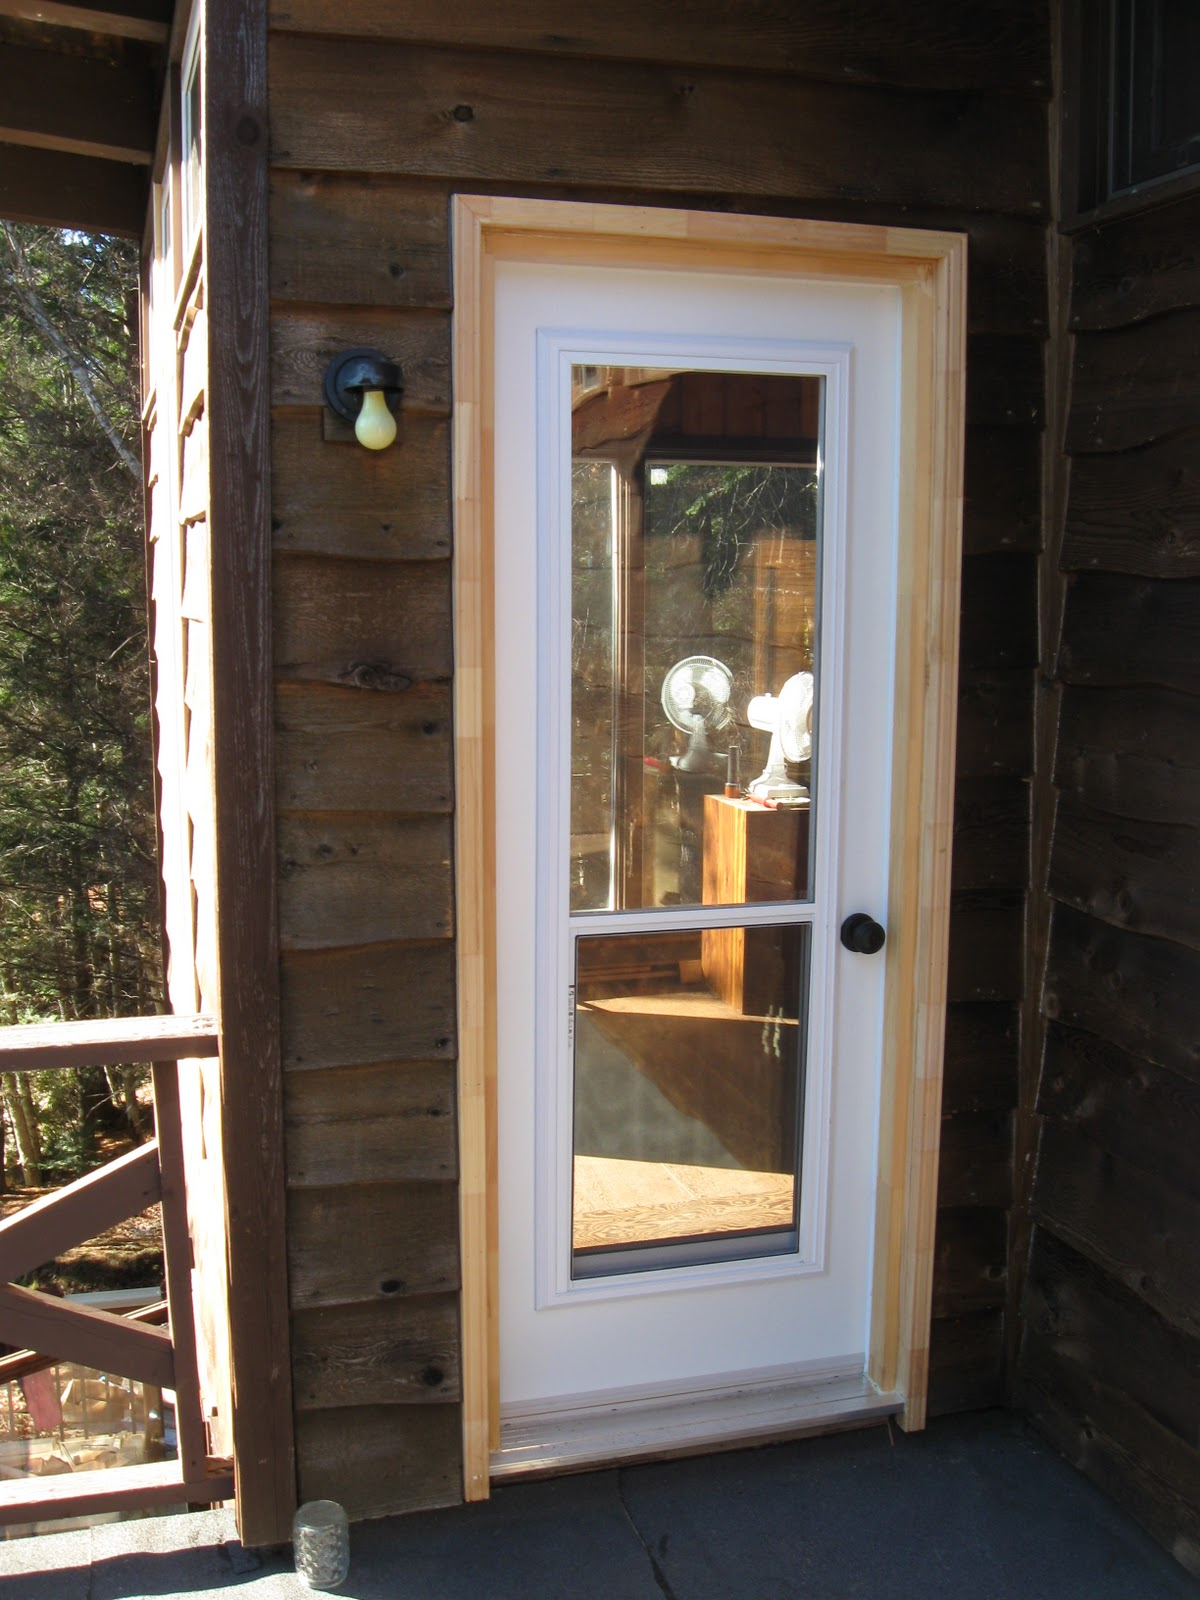 Rave projects new upgraded windows and doors kawagama for New windows and doors